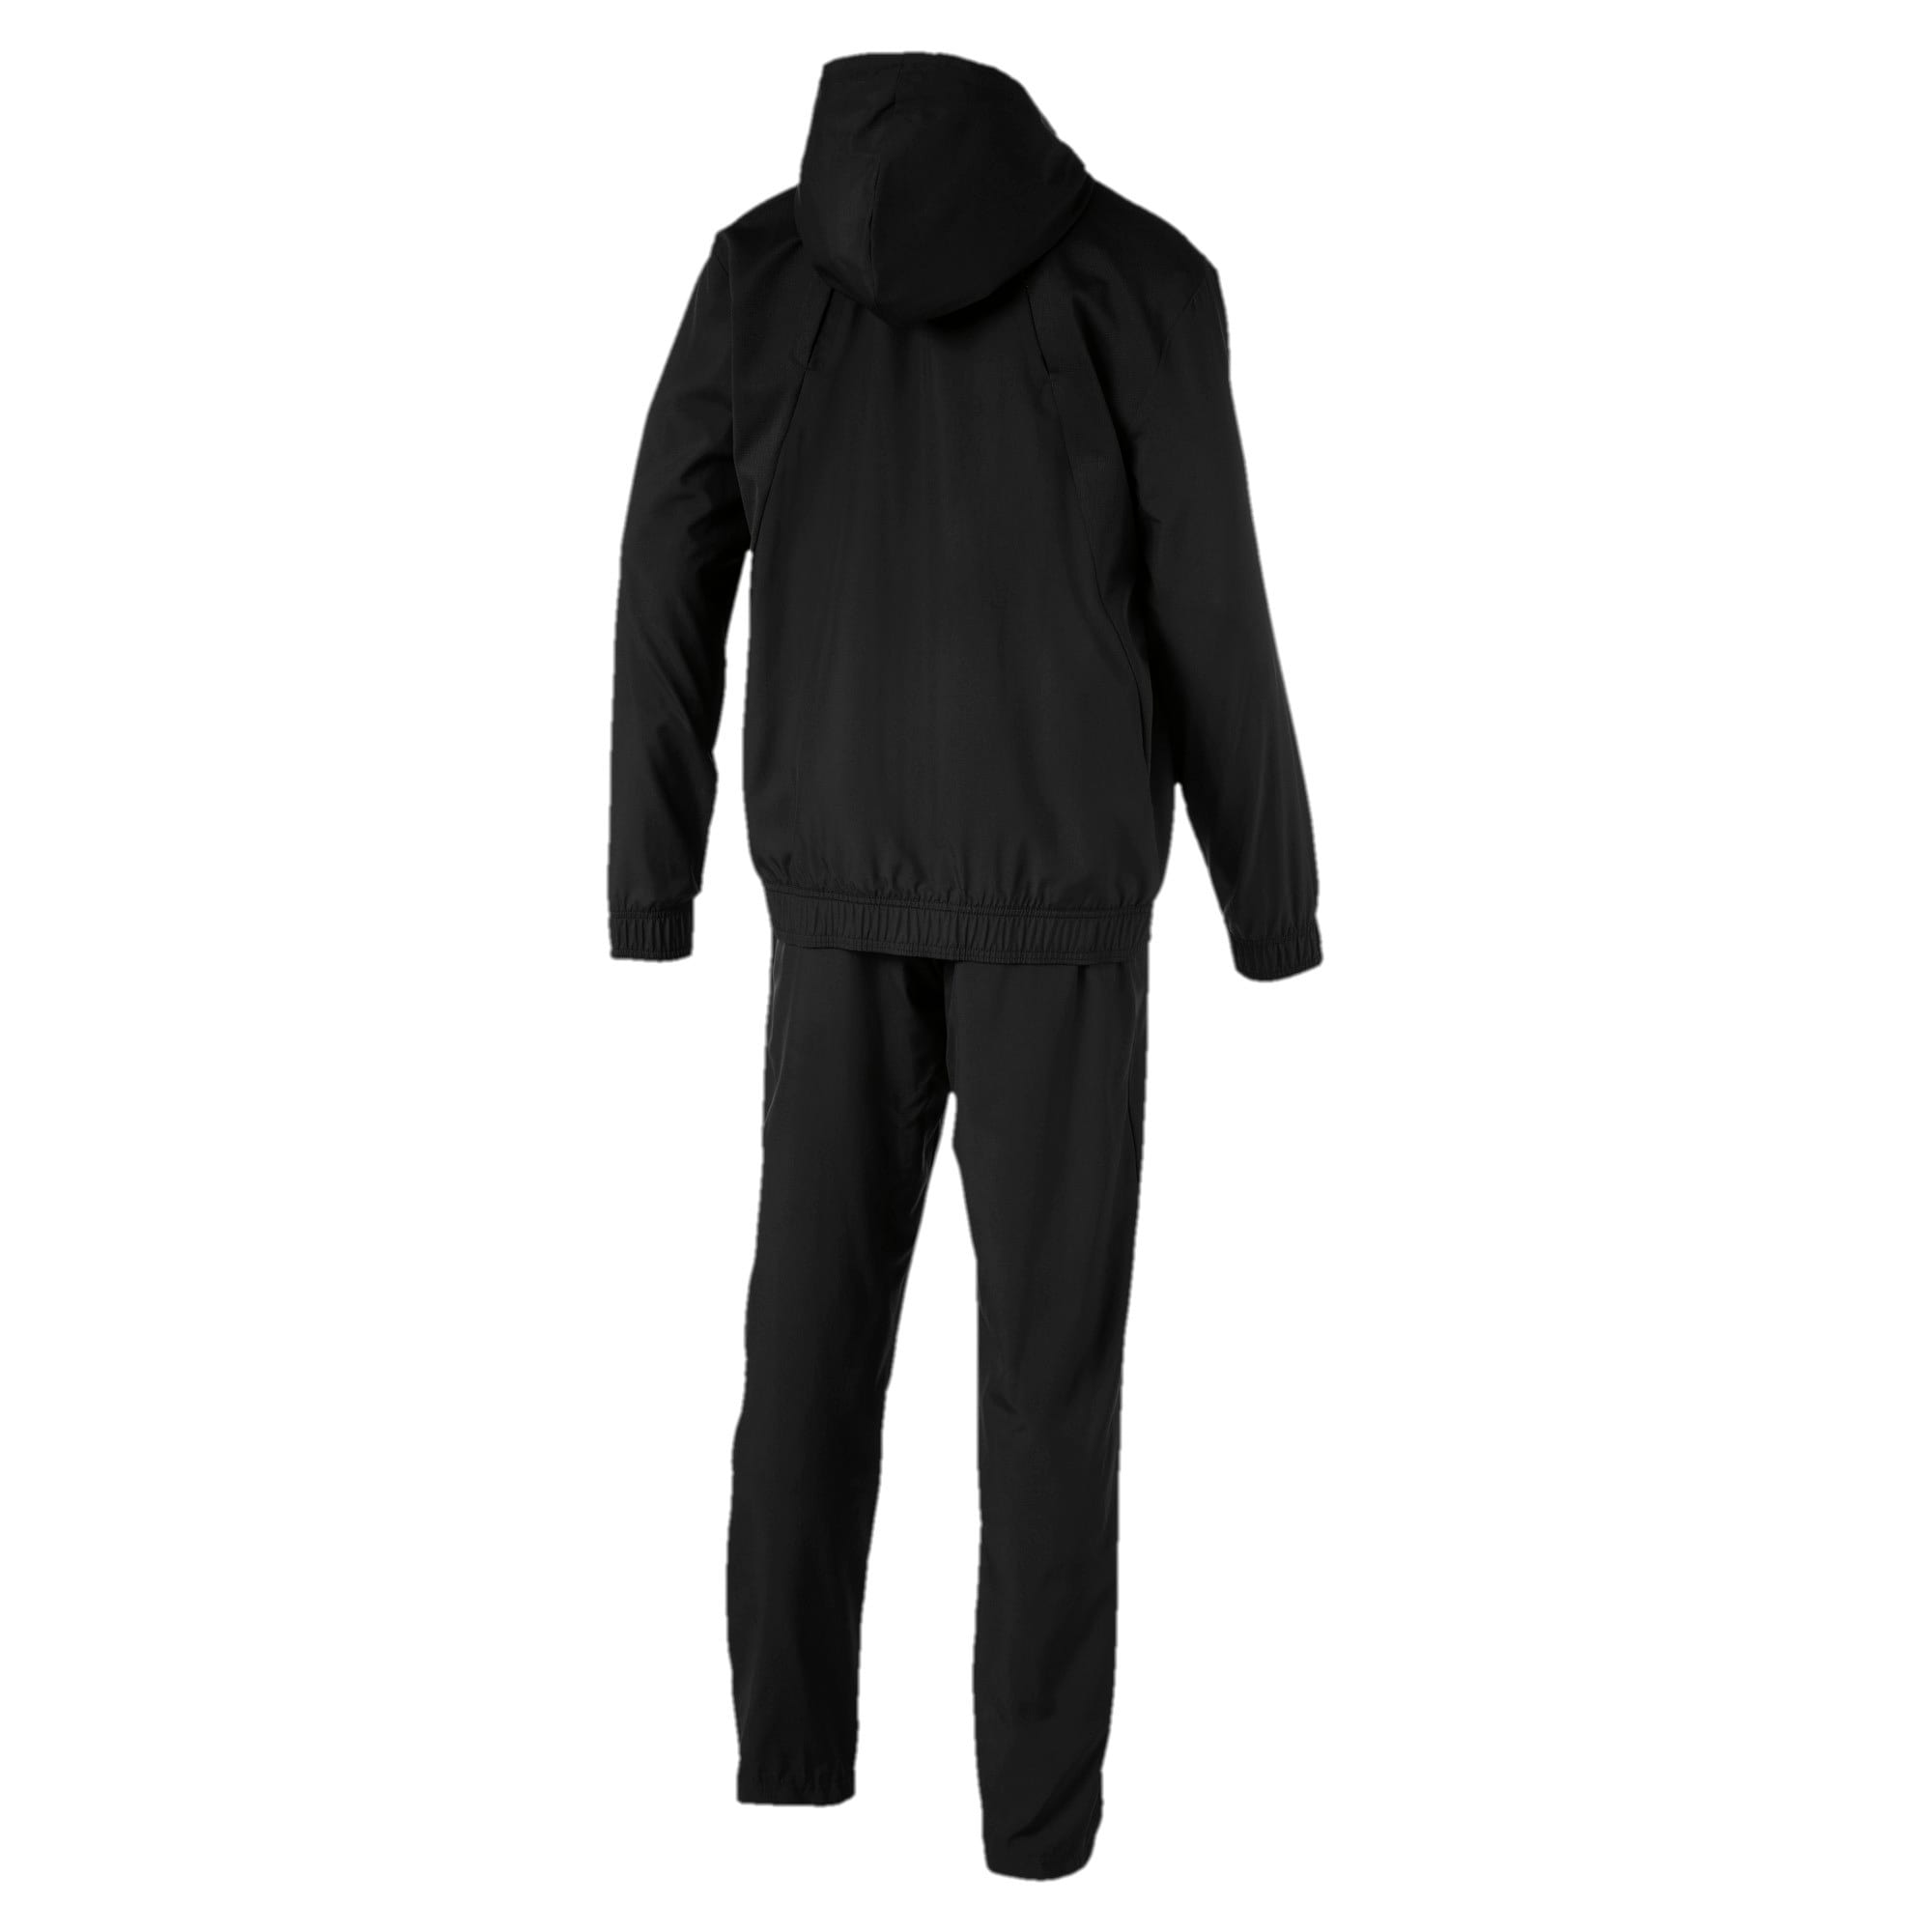 Thumbnail 5 of Modern Sport Hooded Men's Sweat Suit, Puma Black, medium-IND